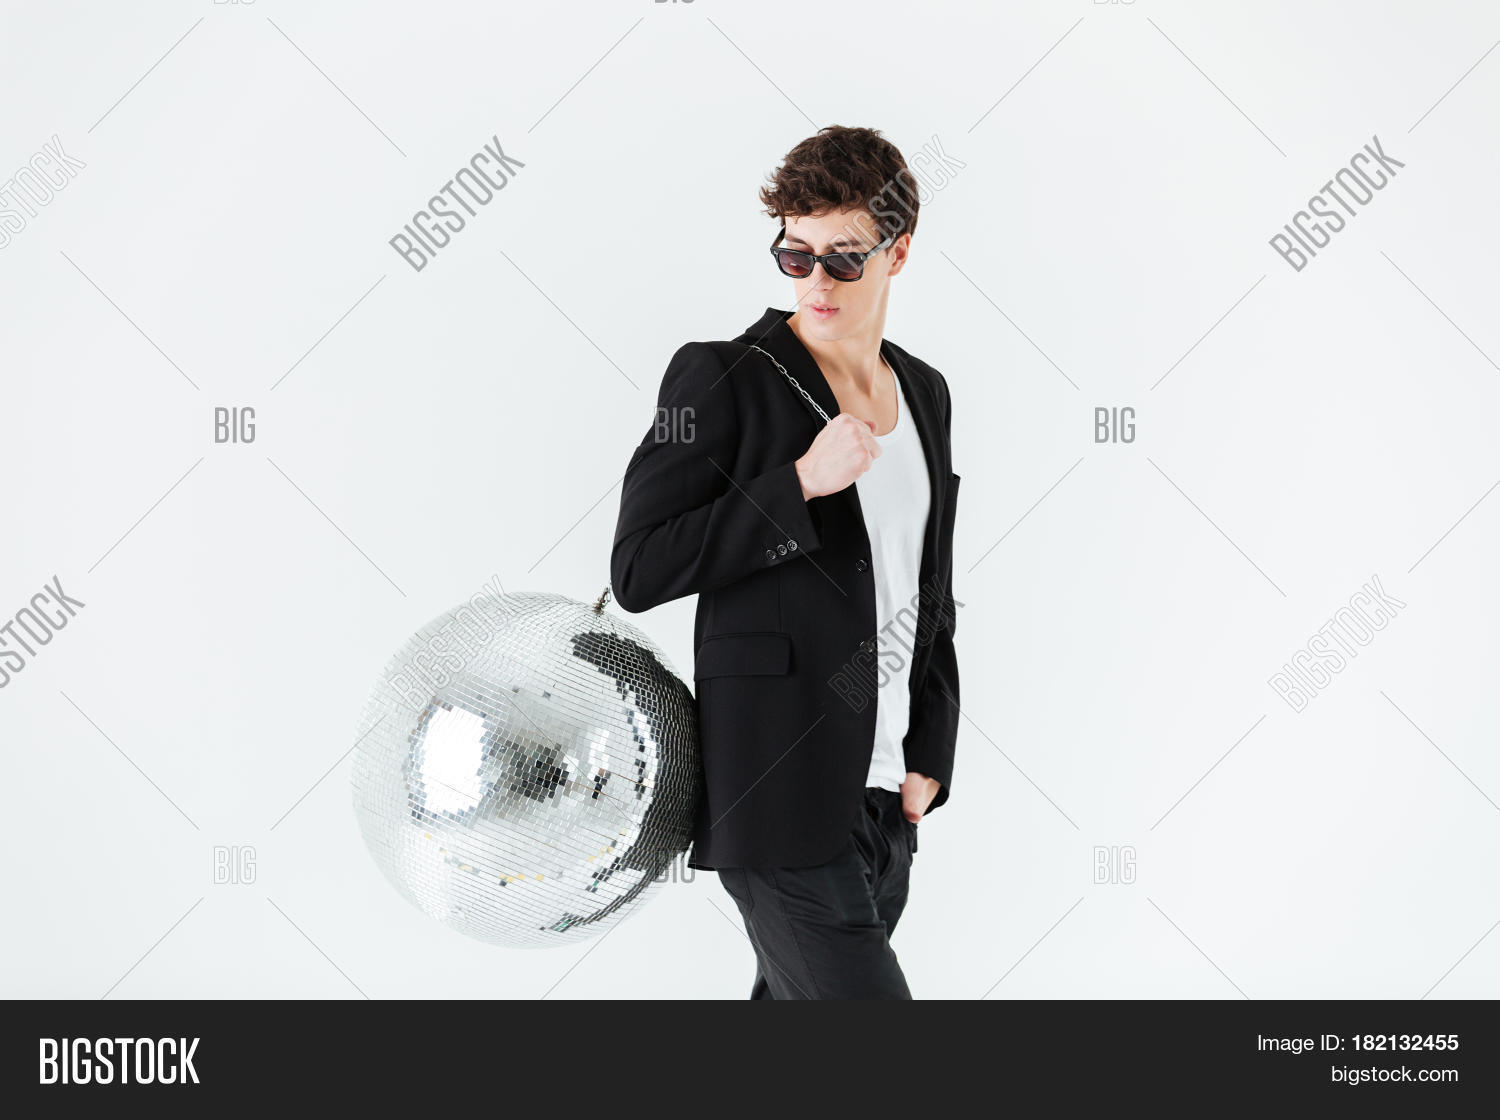 Side view of a man in suit and sunglasses carrying disco ball over white background